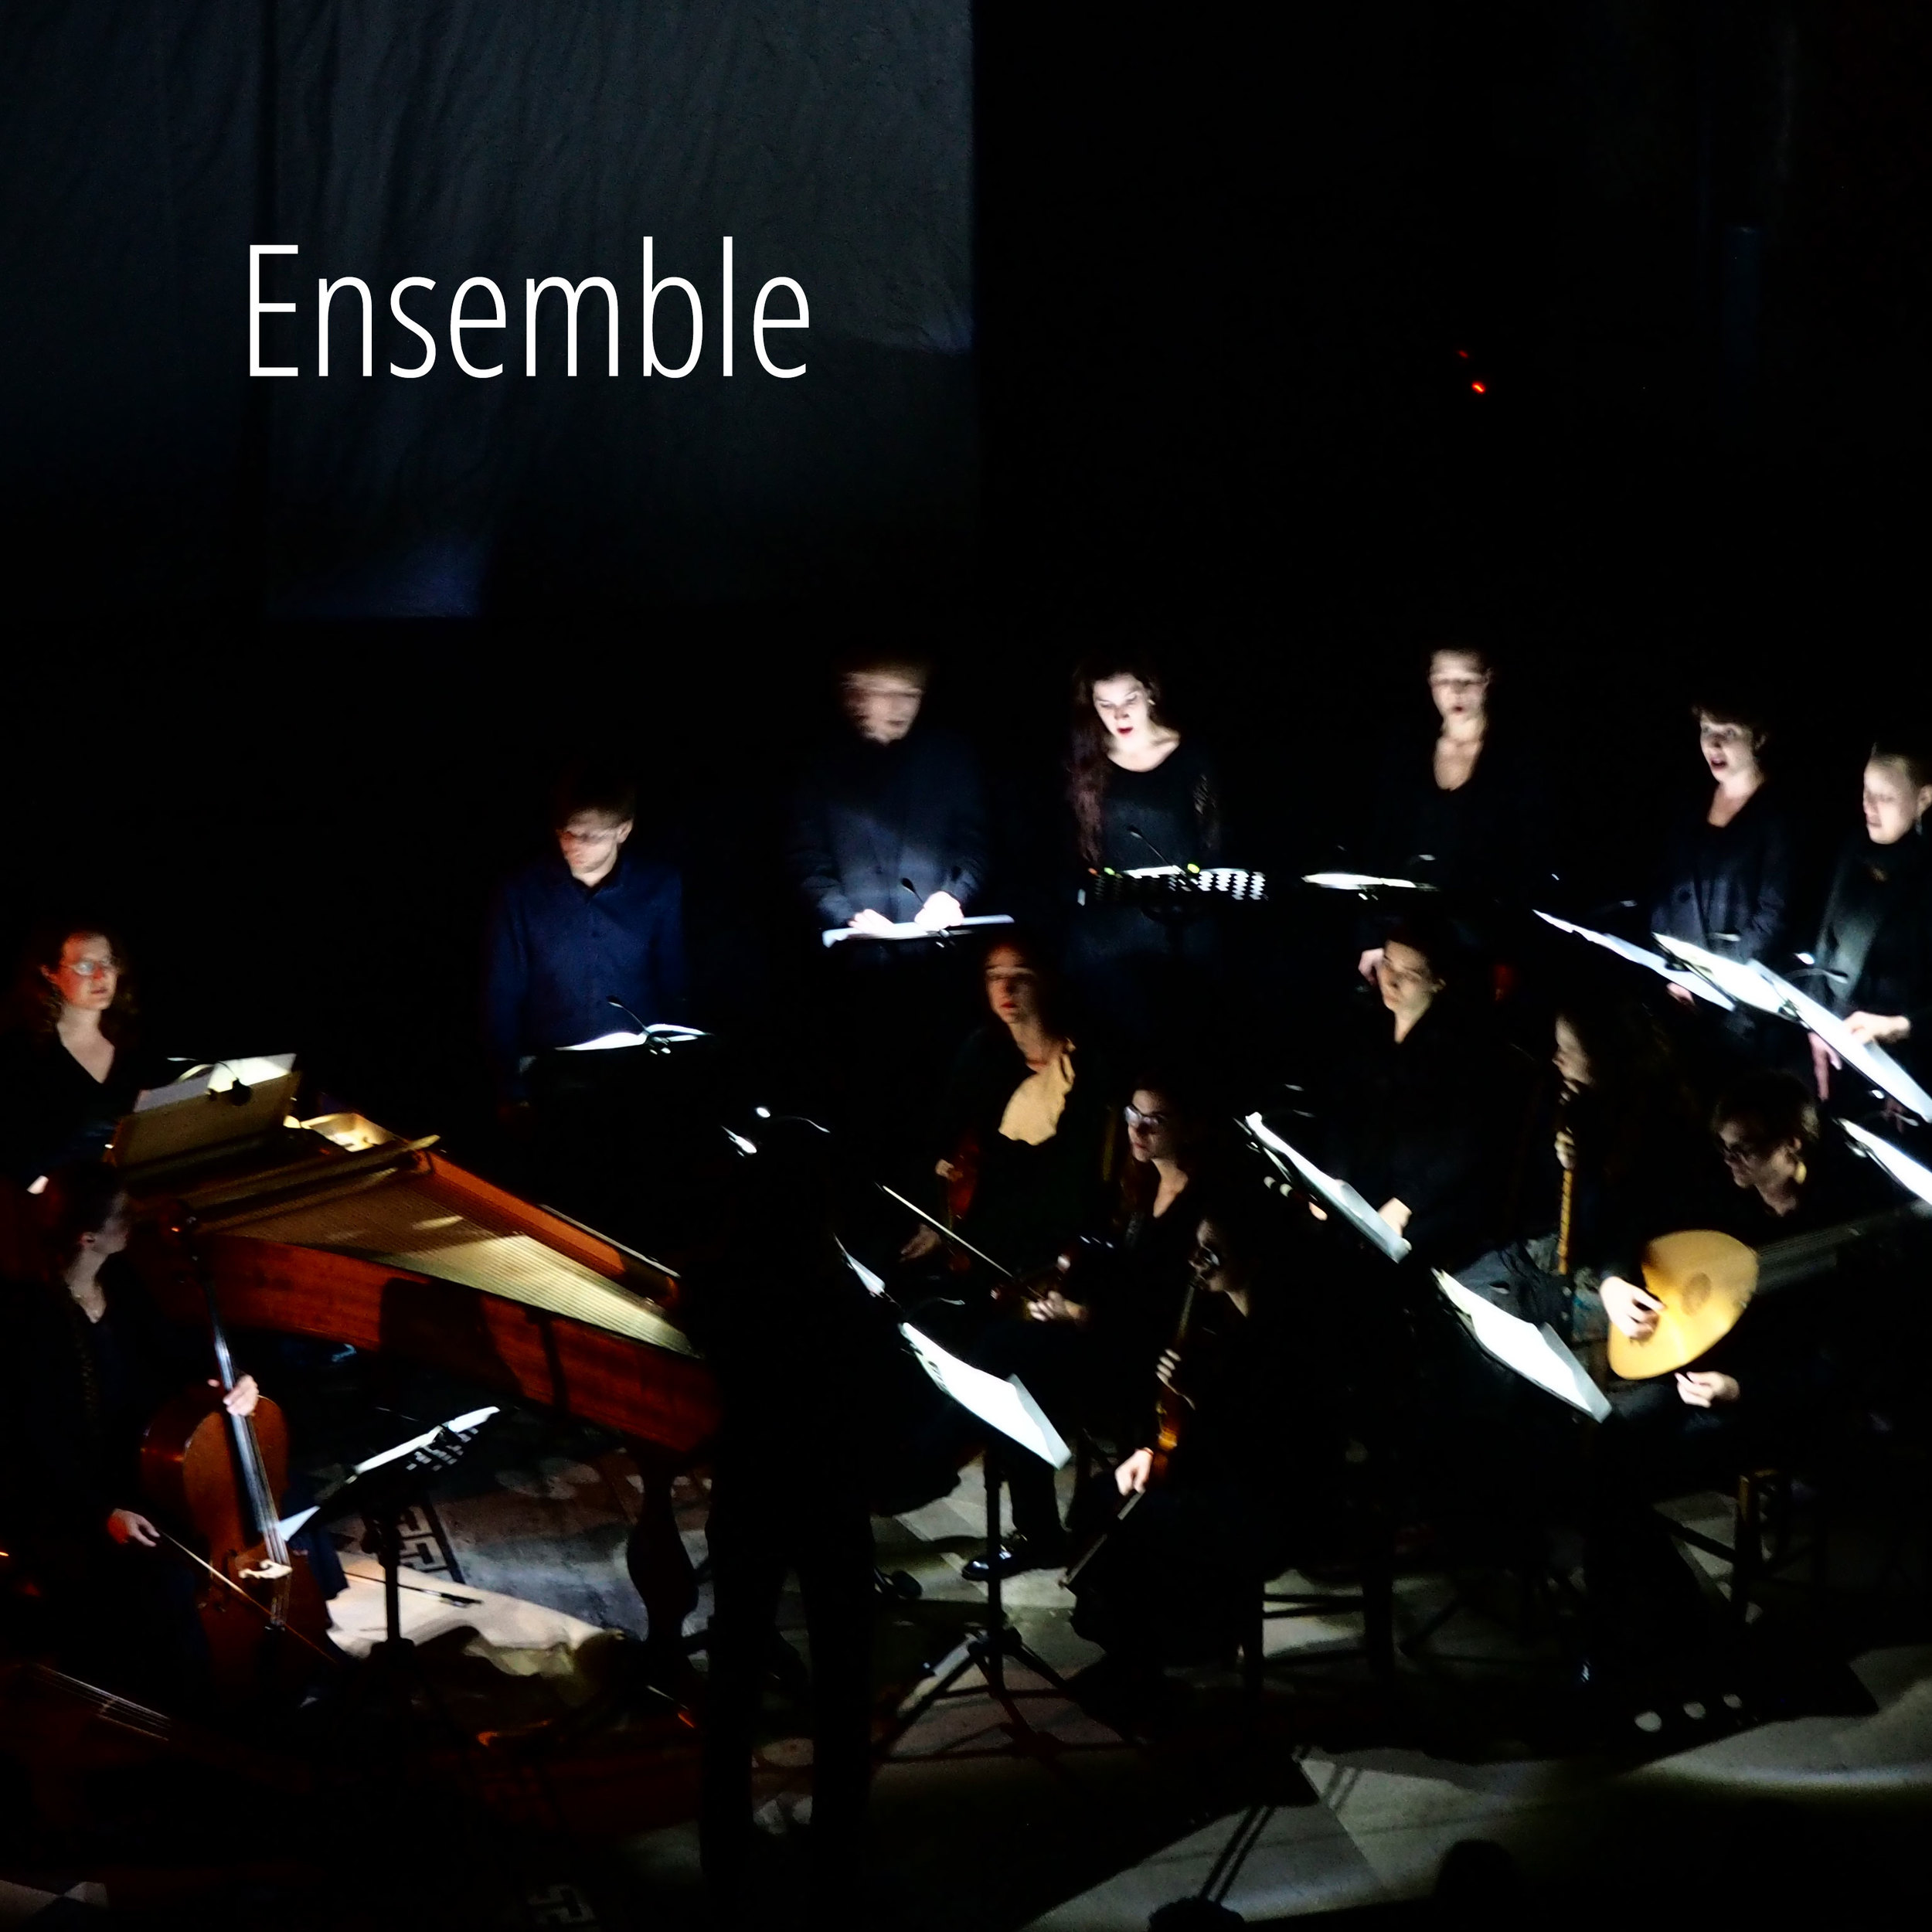 ensemble-square.jpg